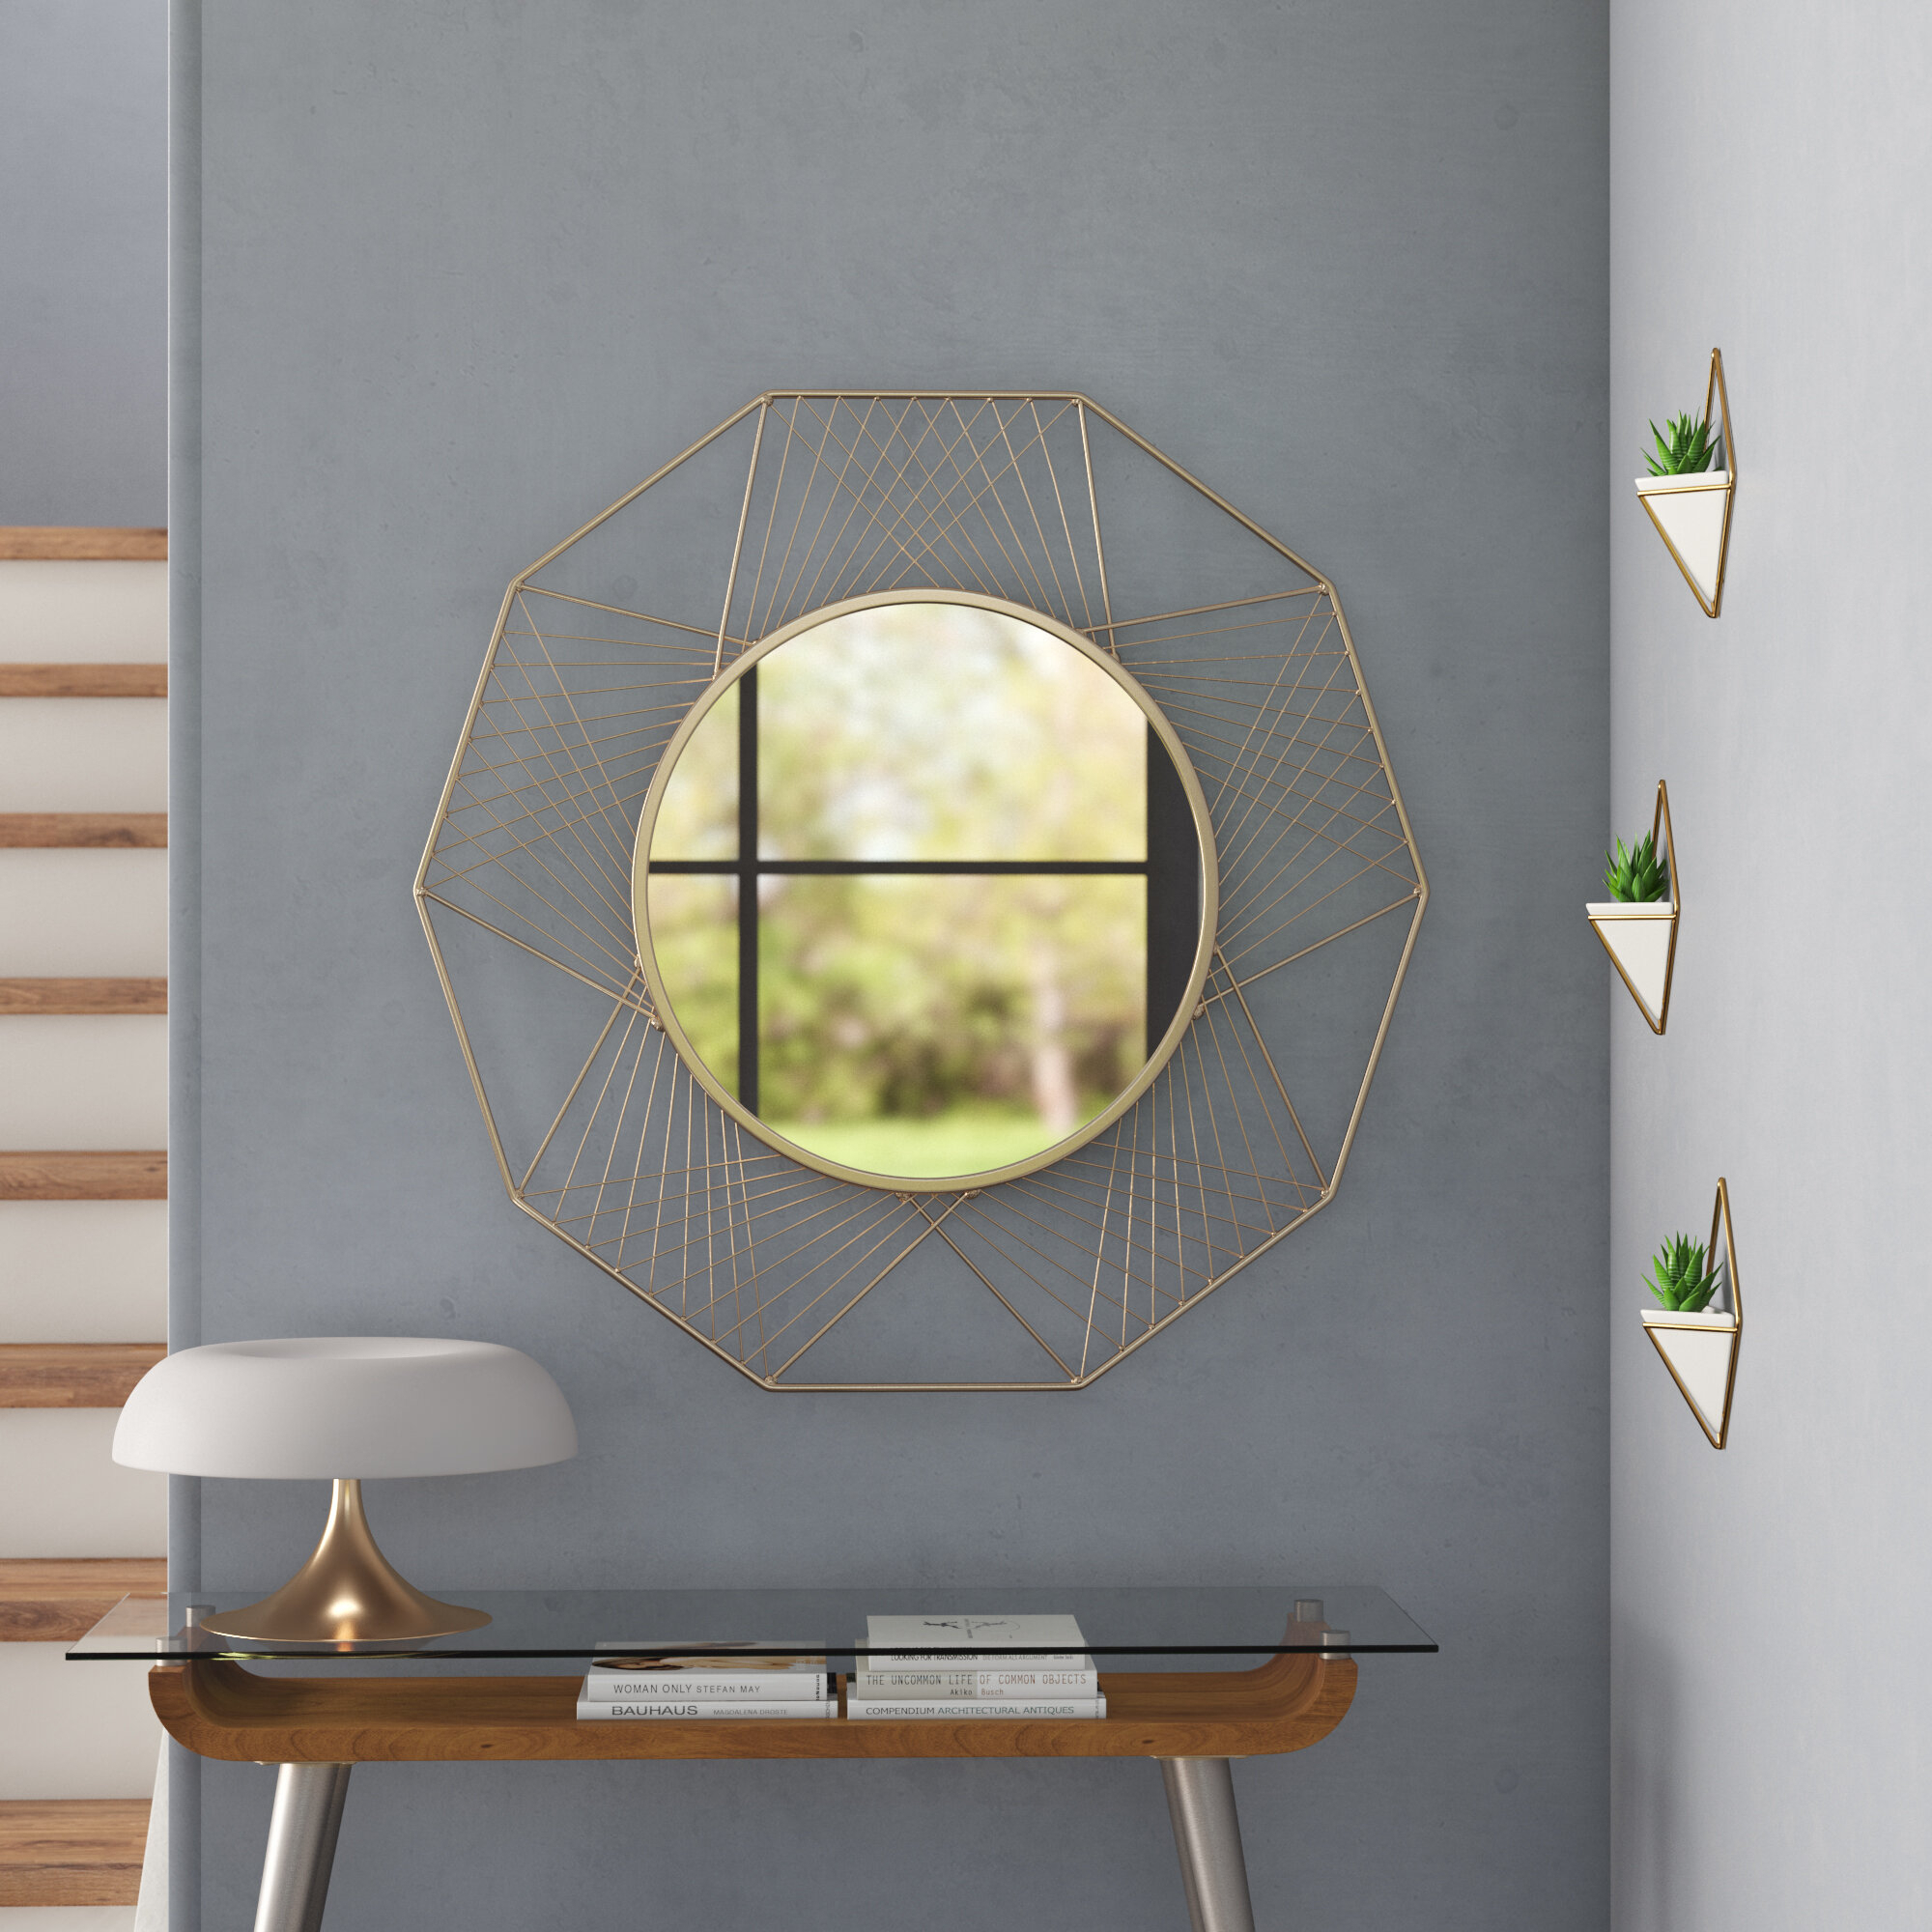 20 Ideas Of Rings Wall Decorwrought Studio Within Rings Wall Decor By Wrought Studio (Gallery 5 of 30)